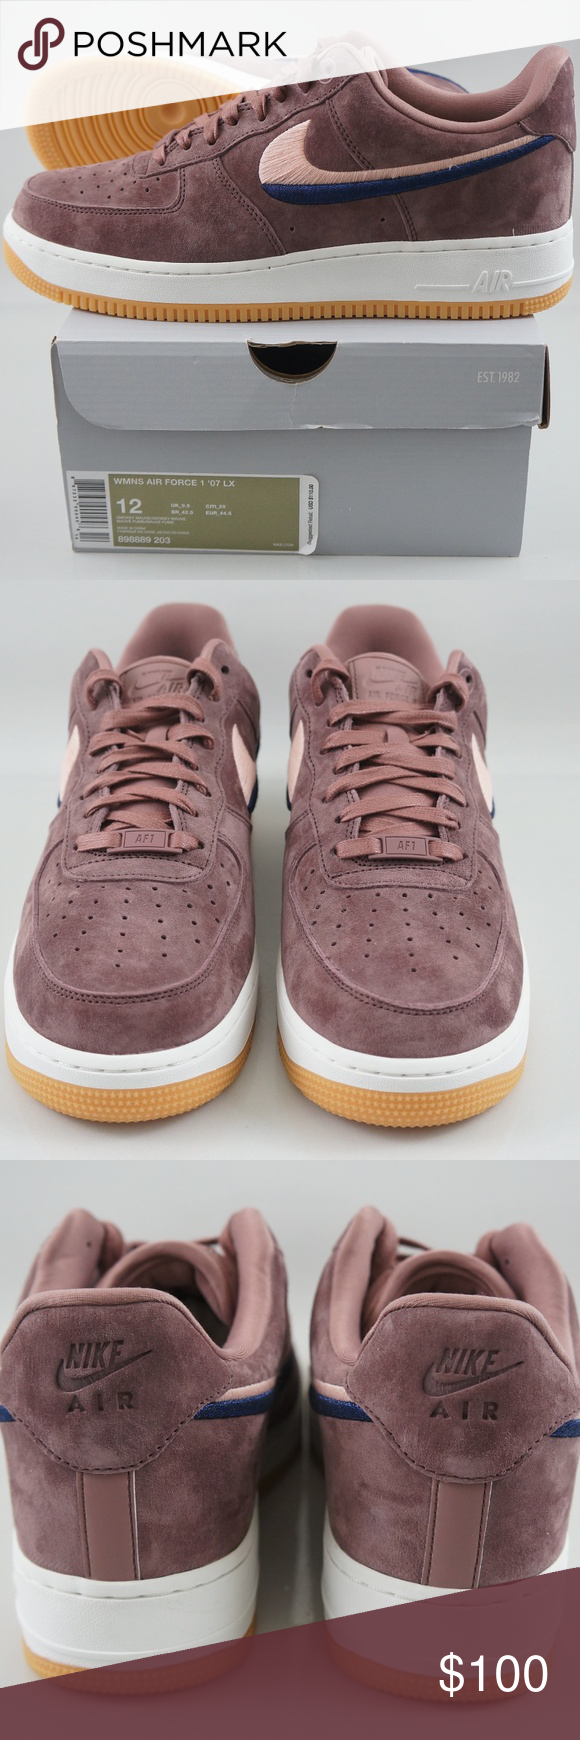 big discount more photos premium selection NIKE WOMENS AIR FORCE 1 '07 LX SIZE 12 ITEM: NIKE WOMENS AIR ...